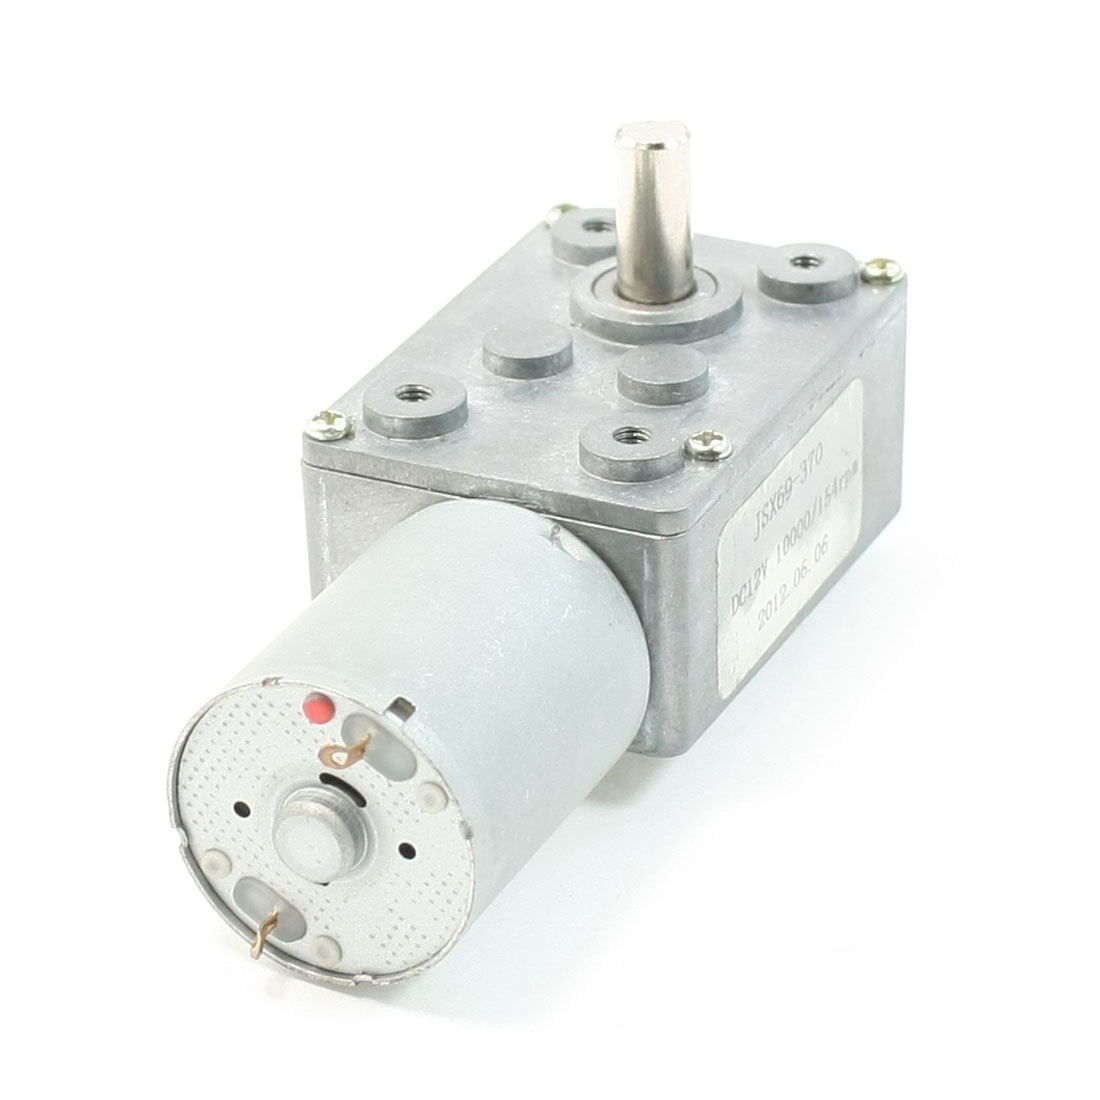 Replacing-Rectangle-Gear-Box-2-Terminal-Electric-Geared-Motor-DC12V-10000-154RPM